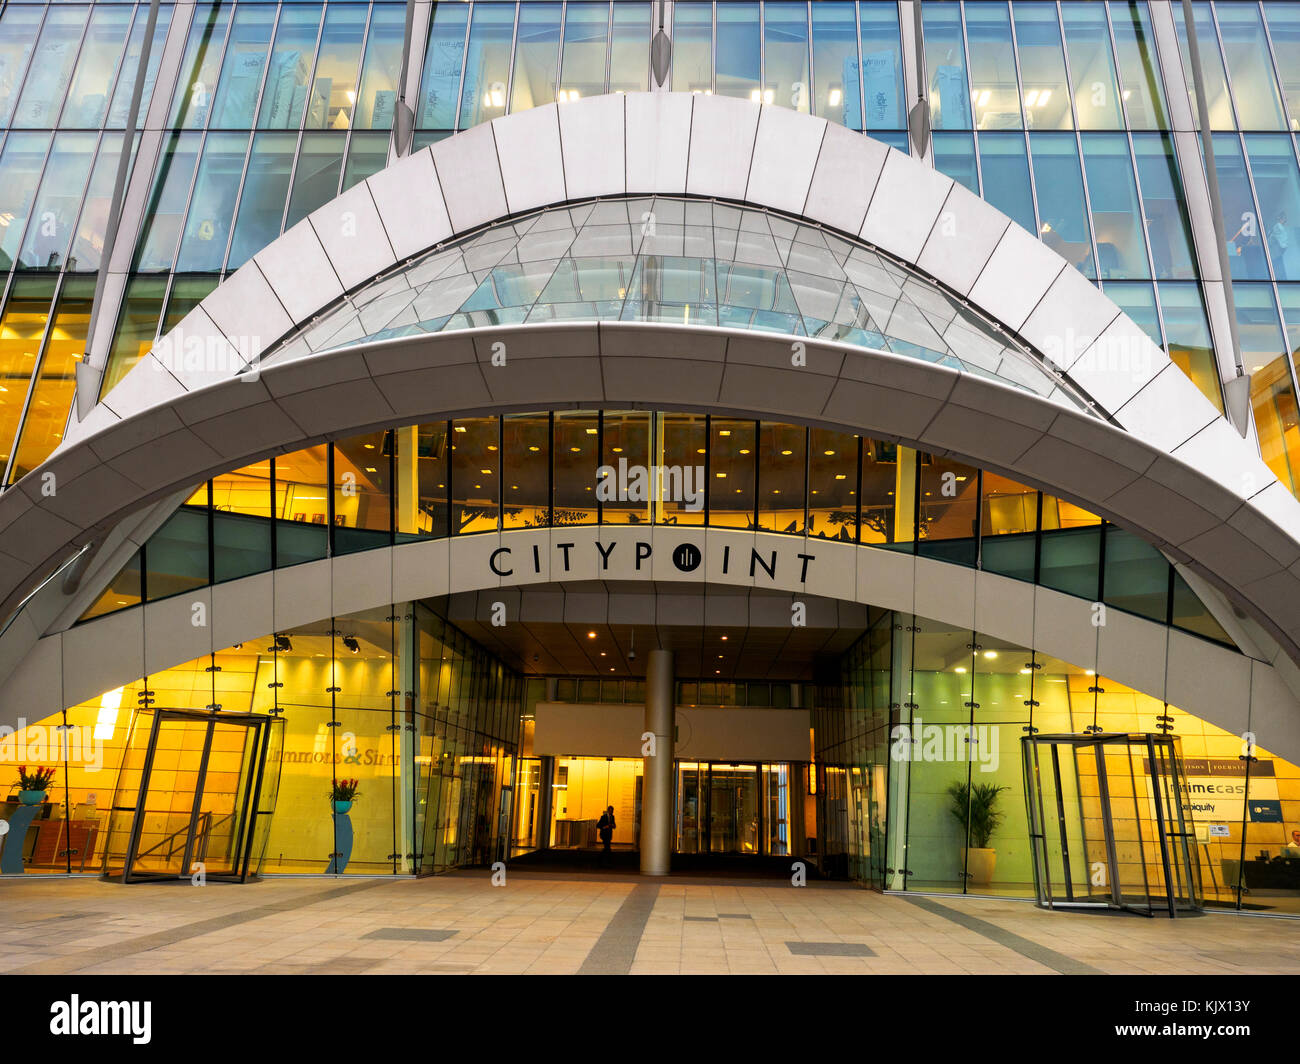 CityPoint (previously known as Britannic House and Britannic Tower) building - London, England - Stock Image